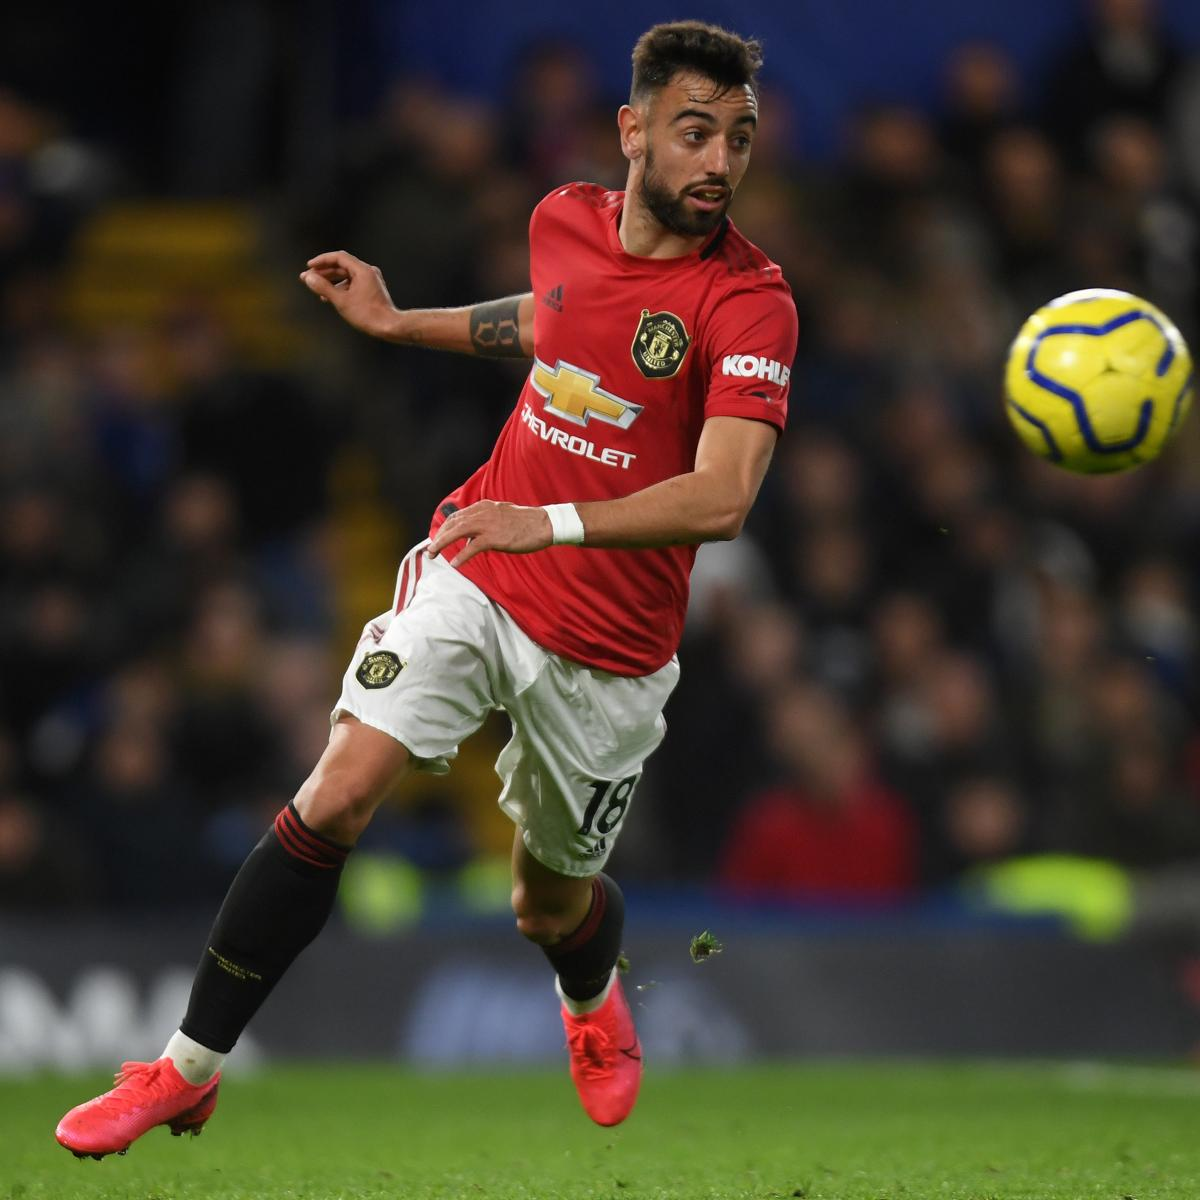 Ole Gunnar Solskjaer Talks 'Top-Class' Bruno Fernandes Impact After Chelsea Win